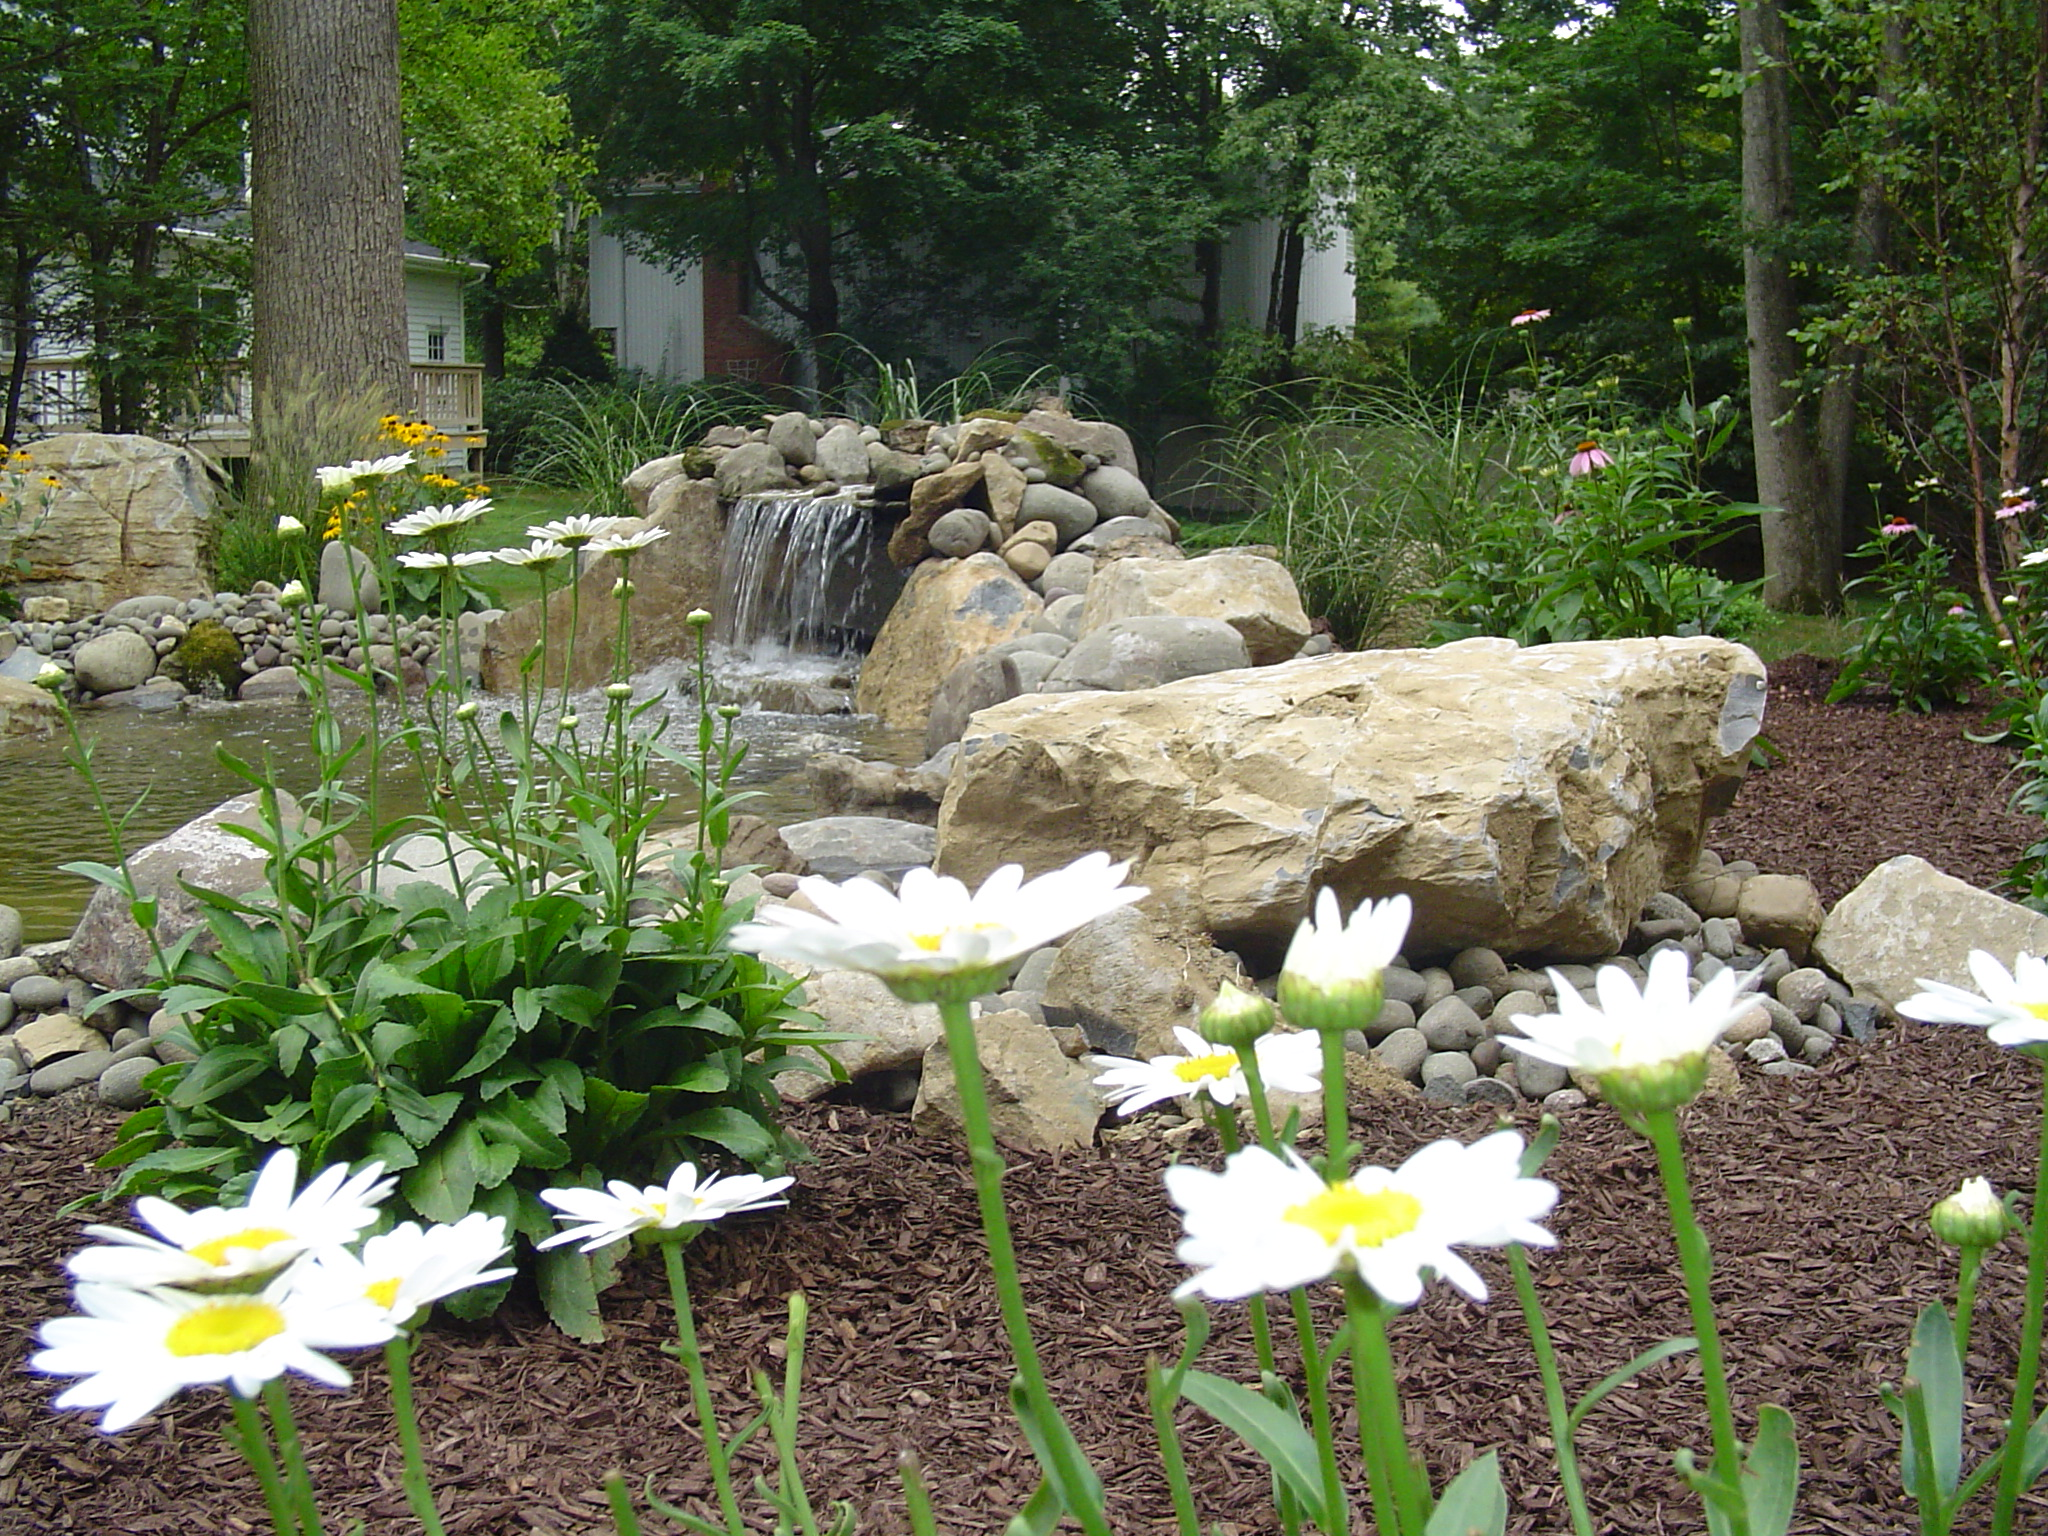 Lawn Maintenance and Fertilization Mistakes to Avoid in Your Pleasant Valley, NY, Area Home